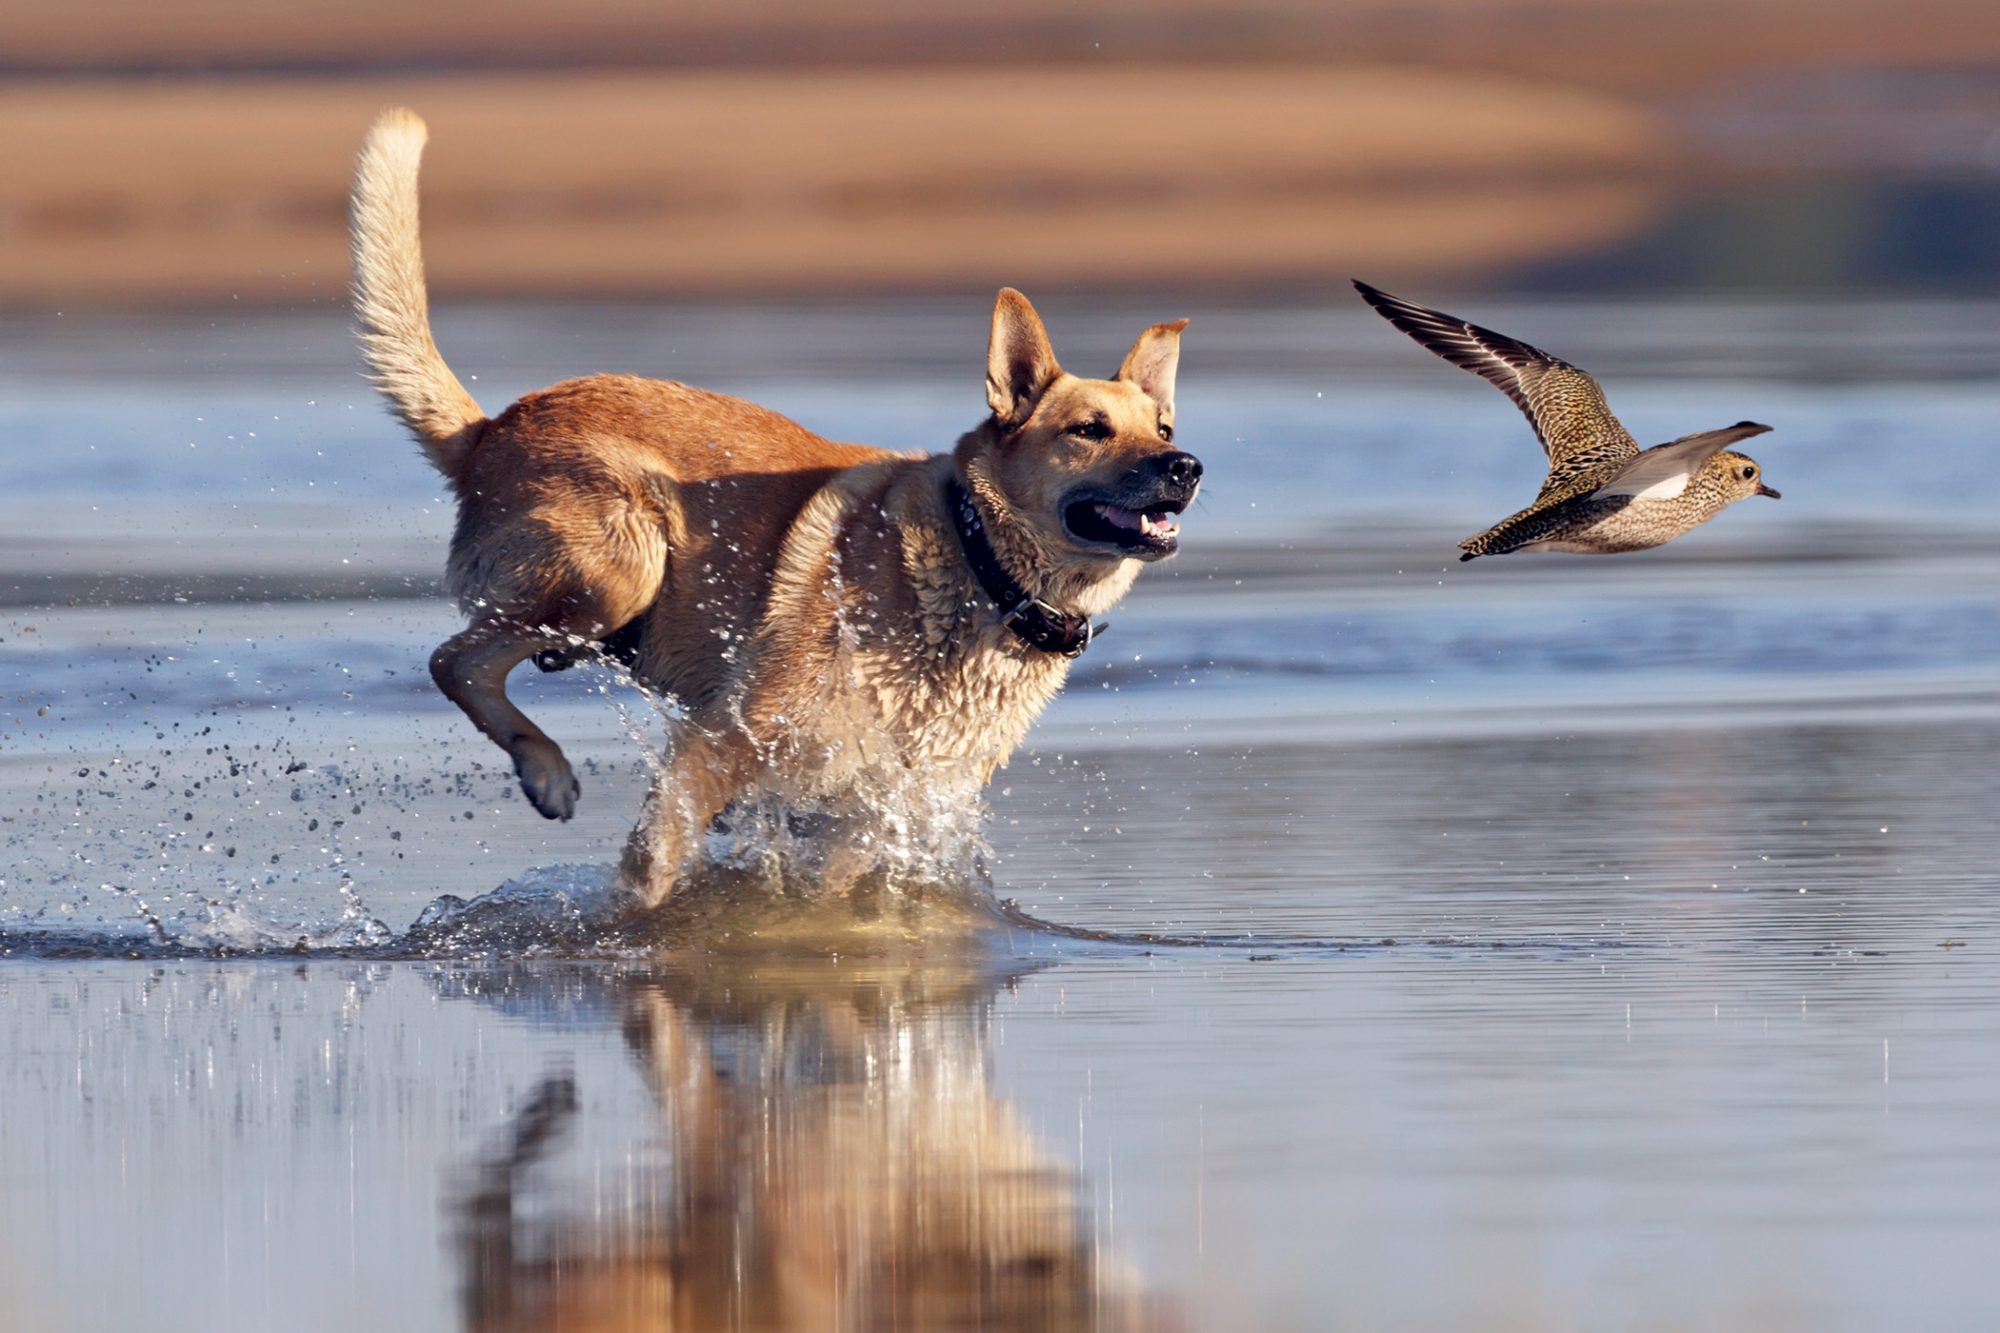 dog chasing bird in water